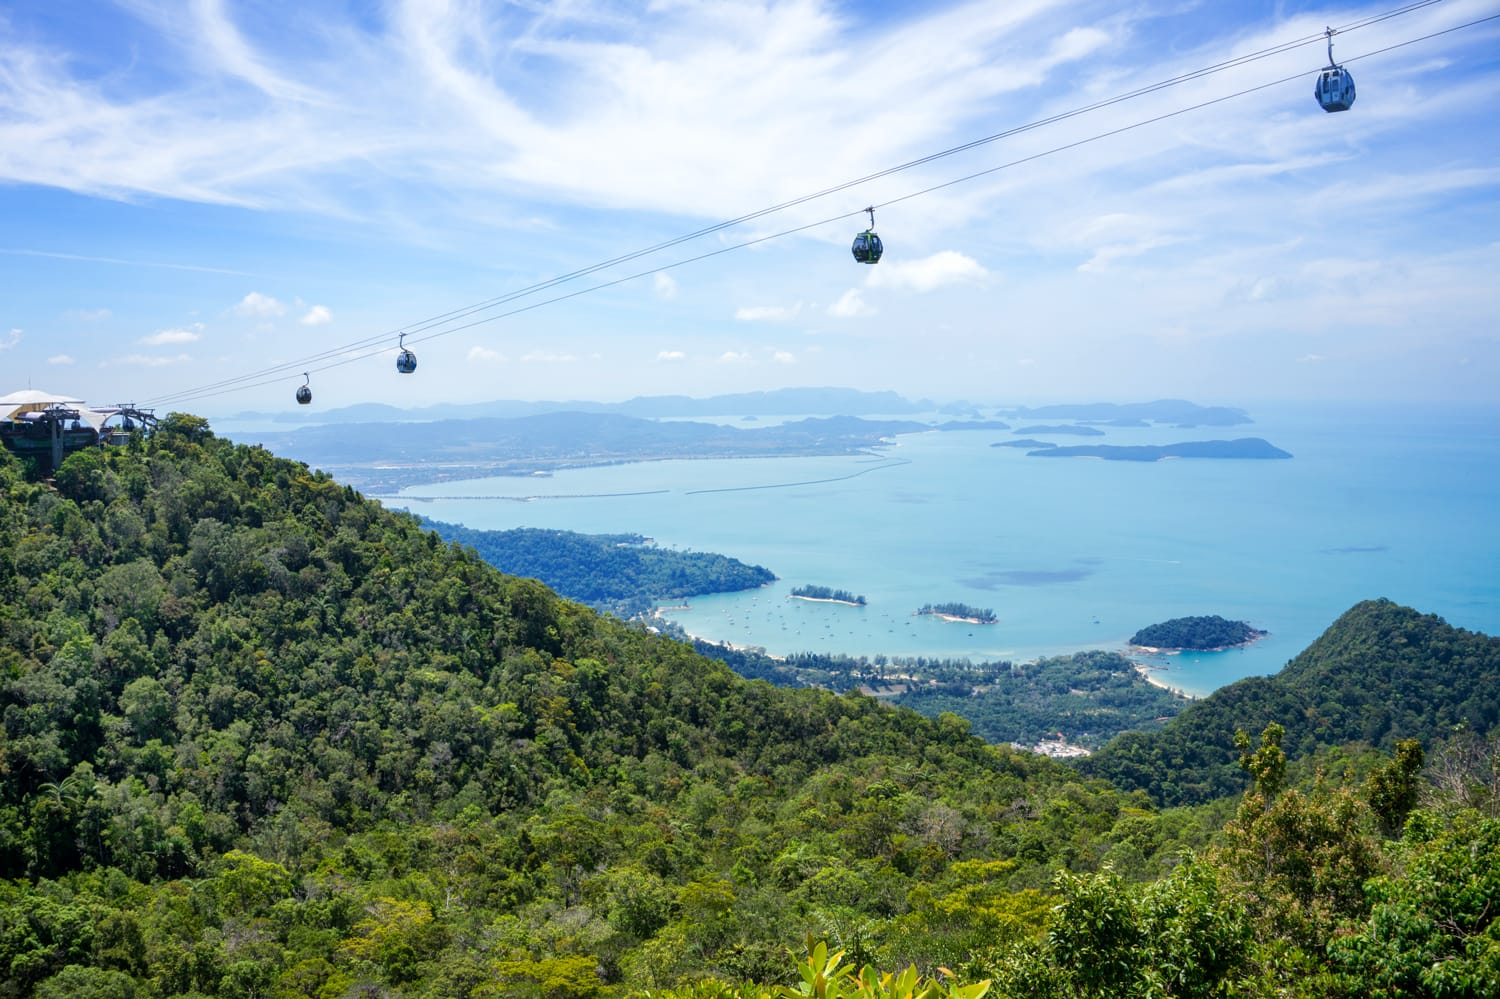 The landscape of Langkawi seen from a Cable Car